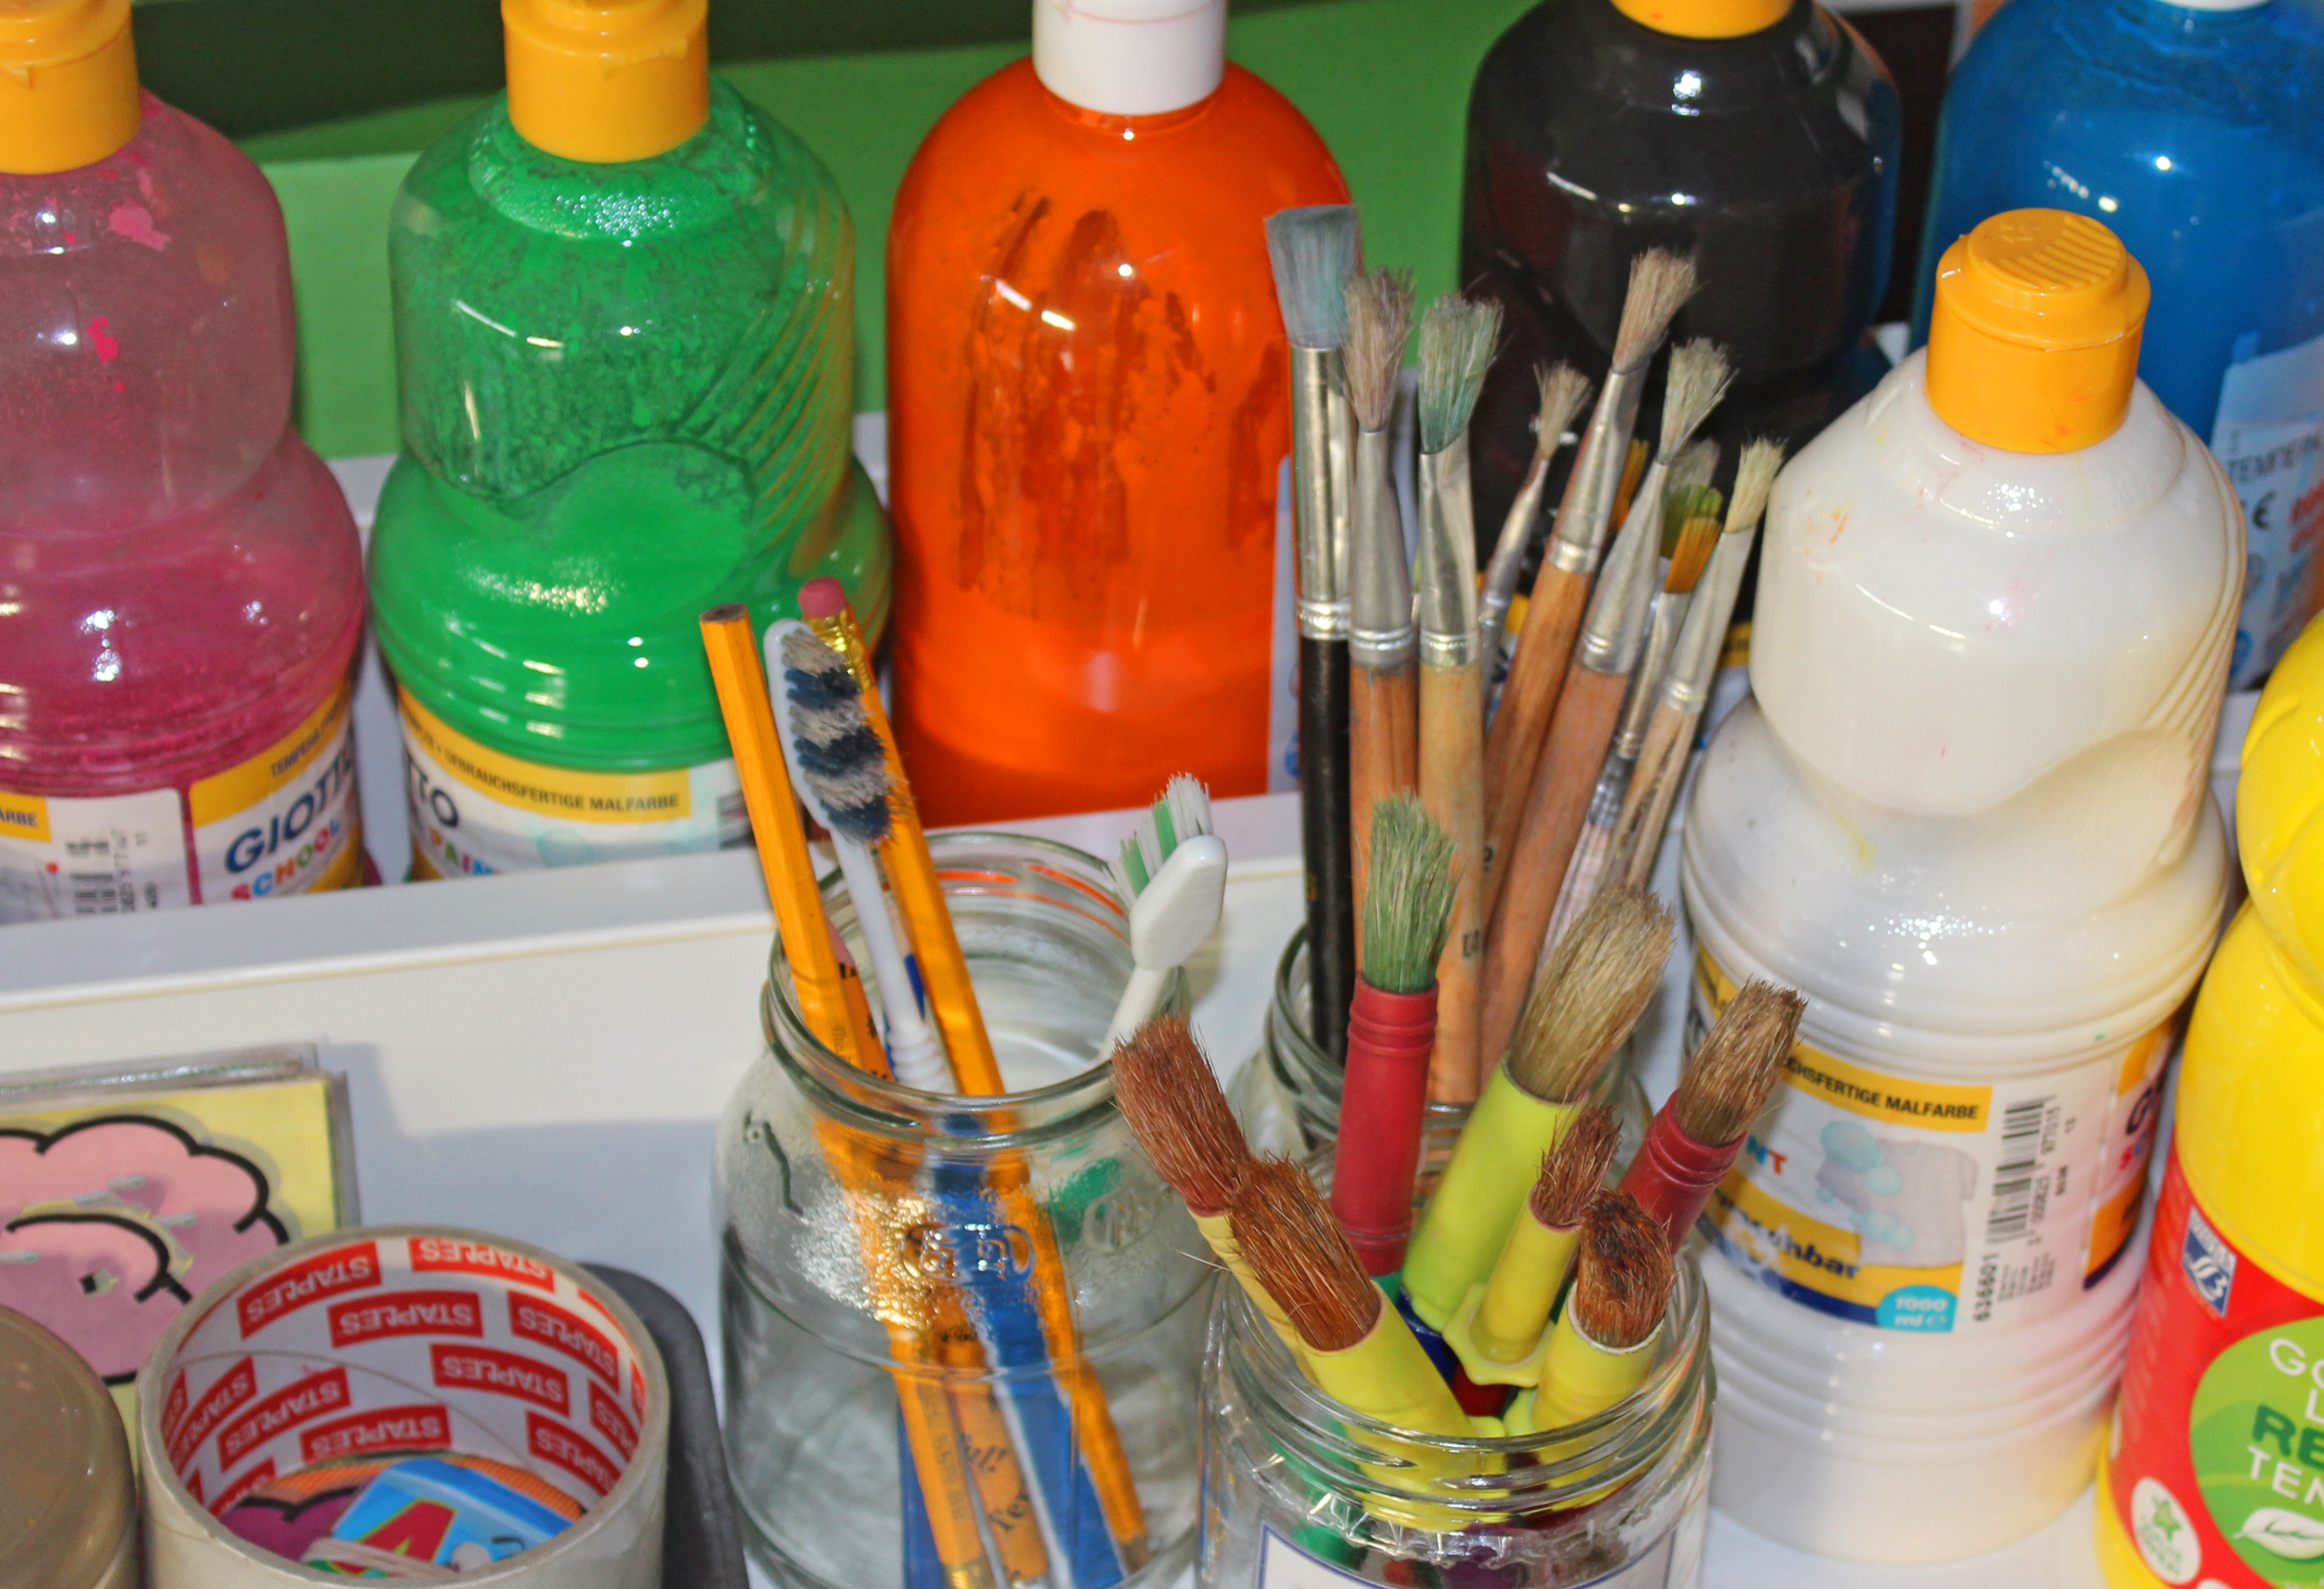 Paints and paintbrushes - paints for kids photo